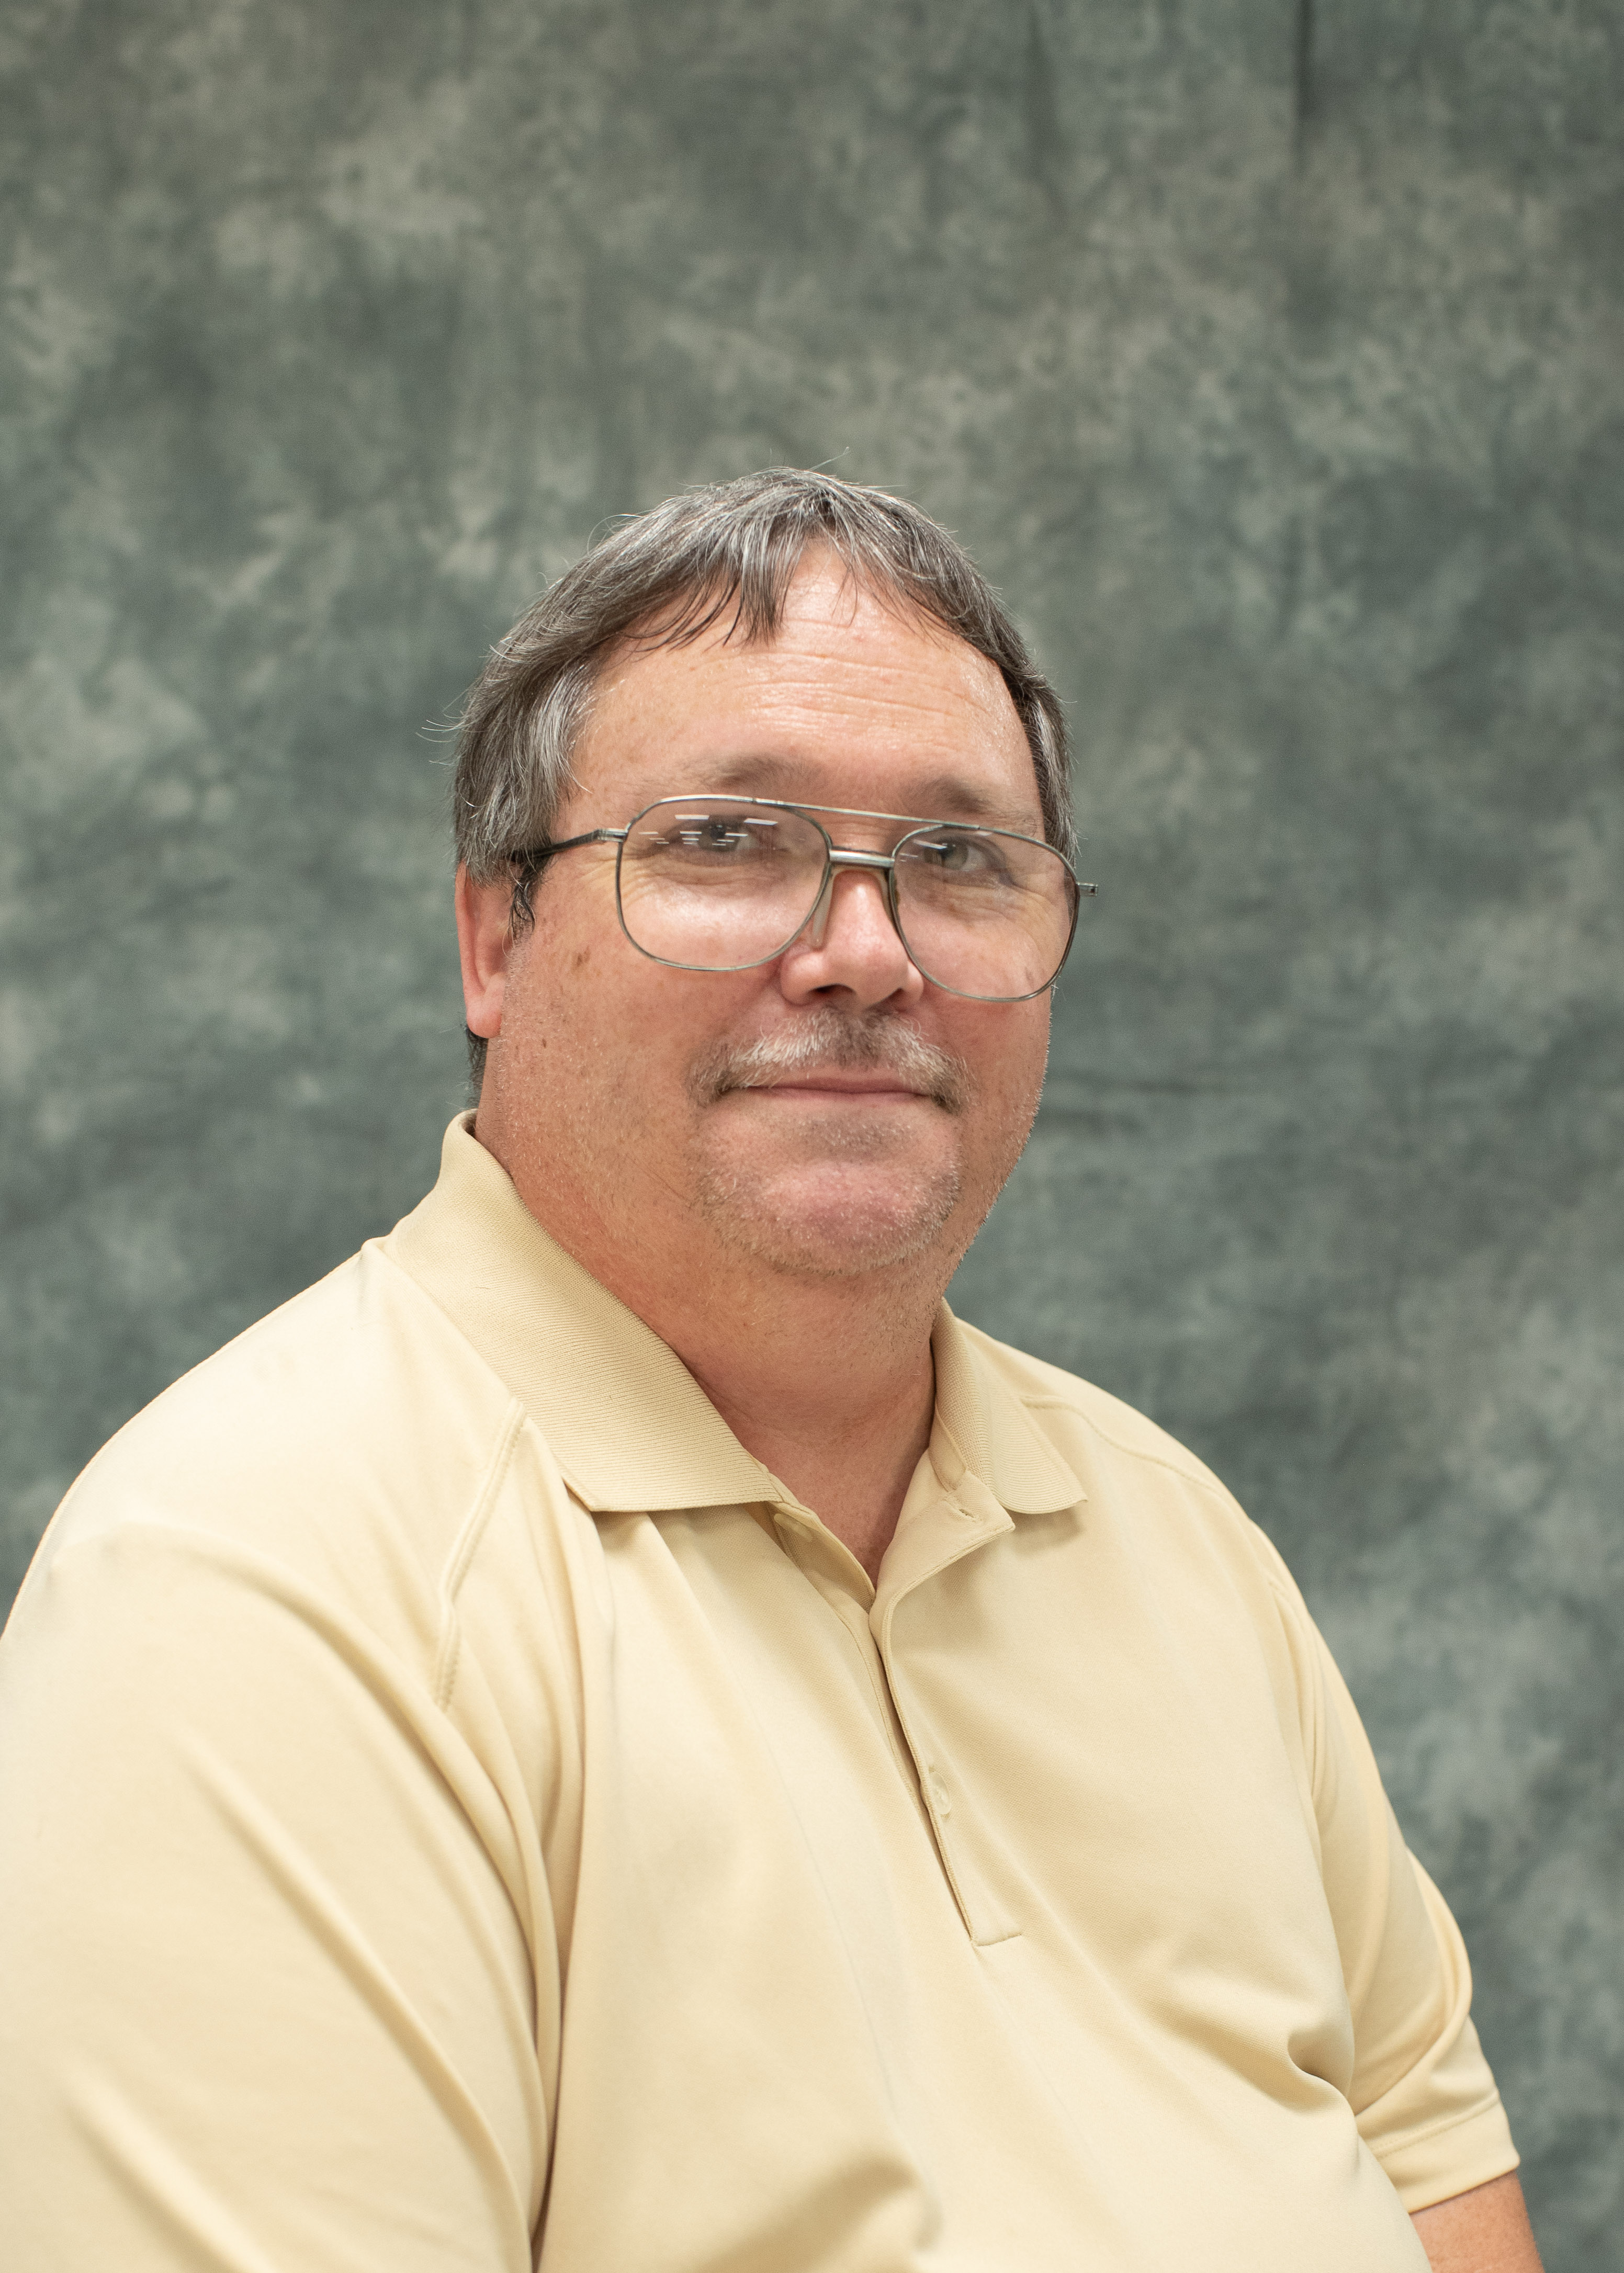 A photo of Mark Morrissey, Board Vice President.